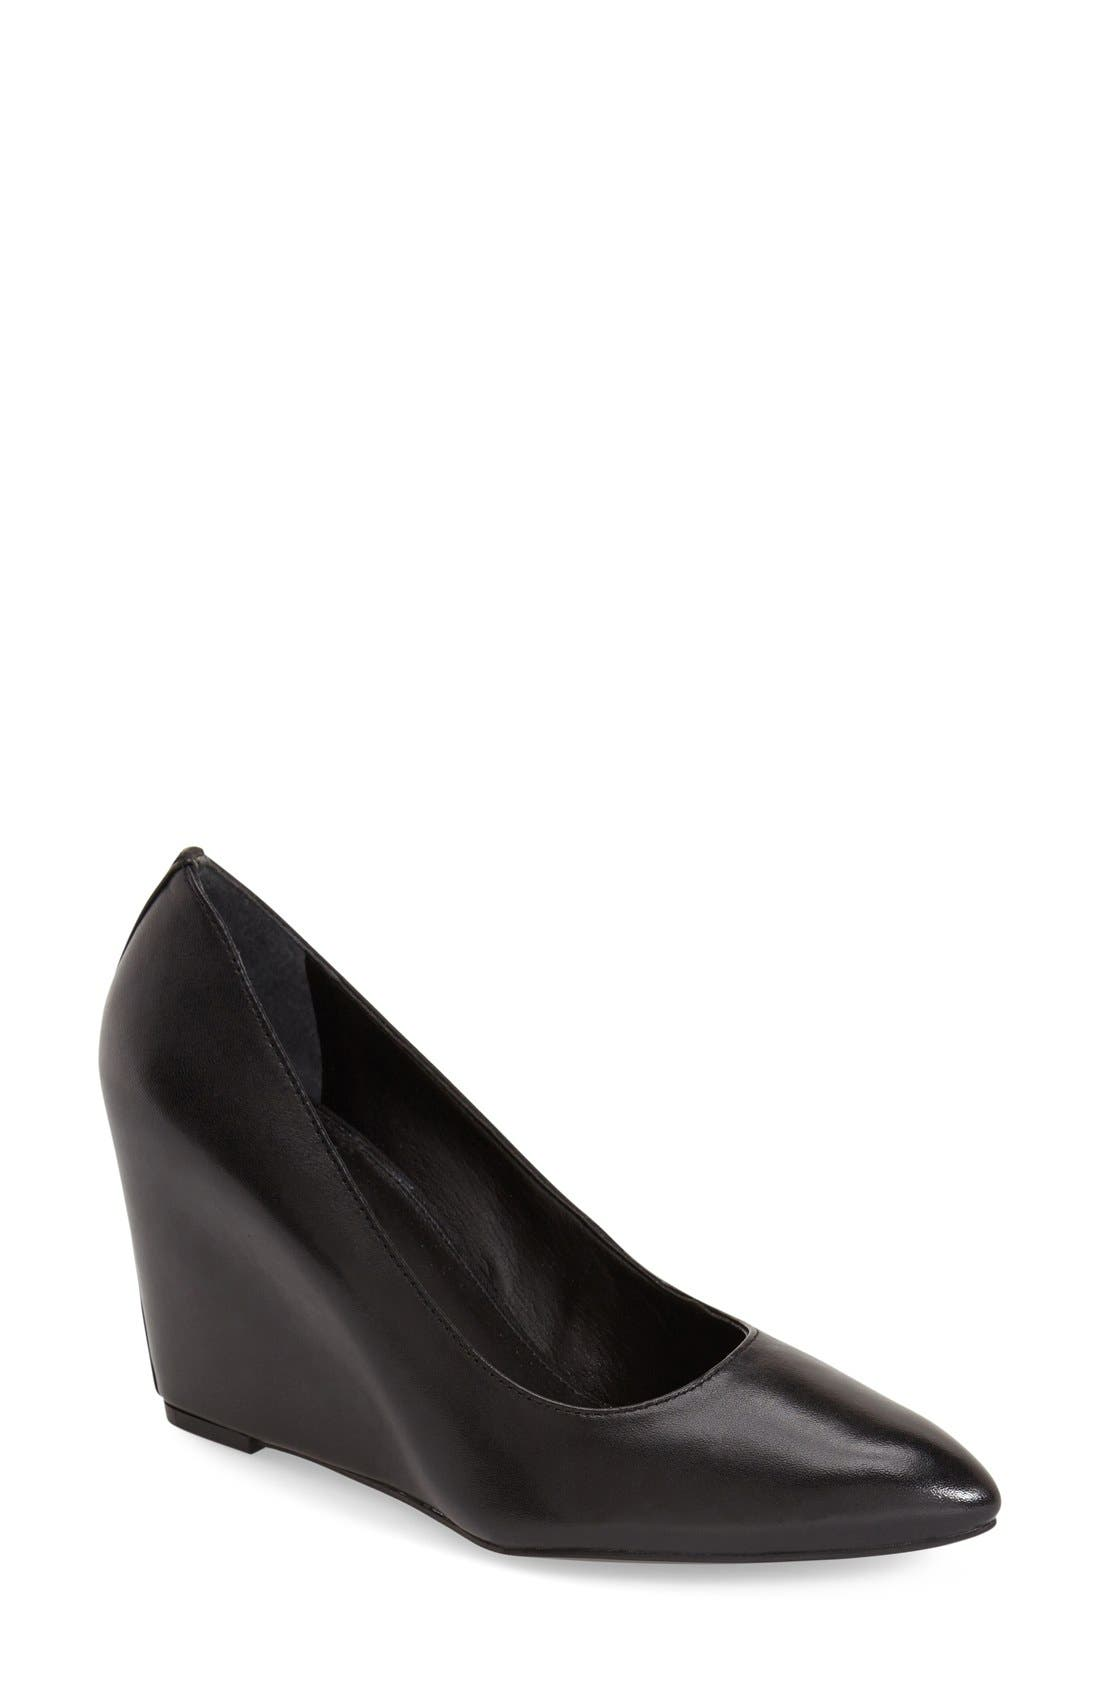 'Woodstock' Wedge Pump,                             Main thumbnail 1, color,                             Black Leather